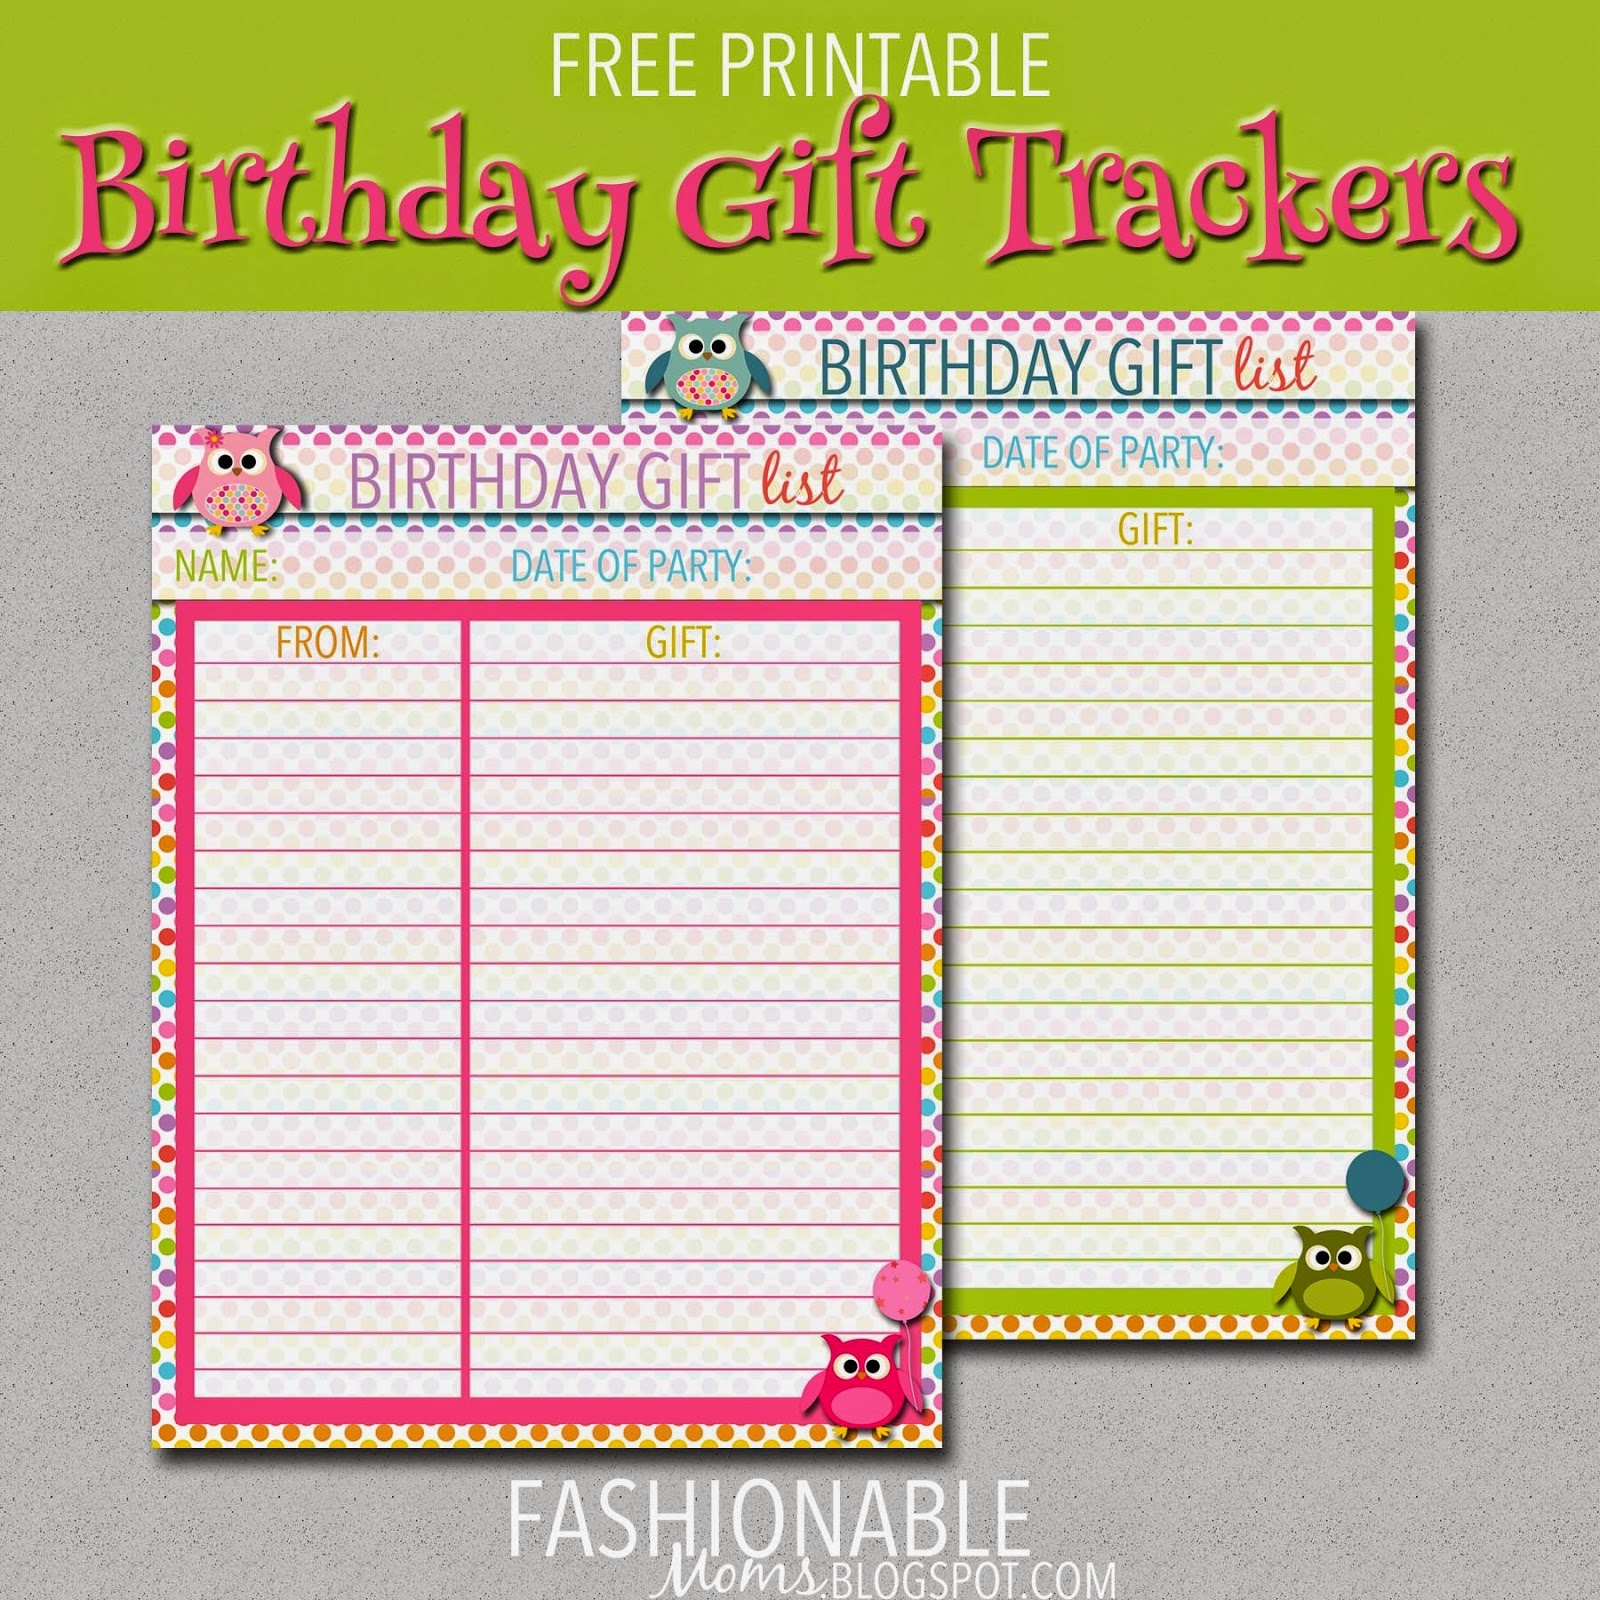 My fashionable designs free printable birthday gift for Birthday gift list template